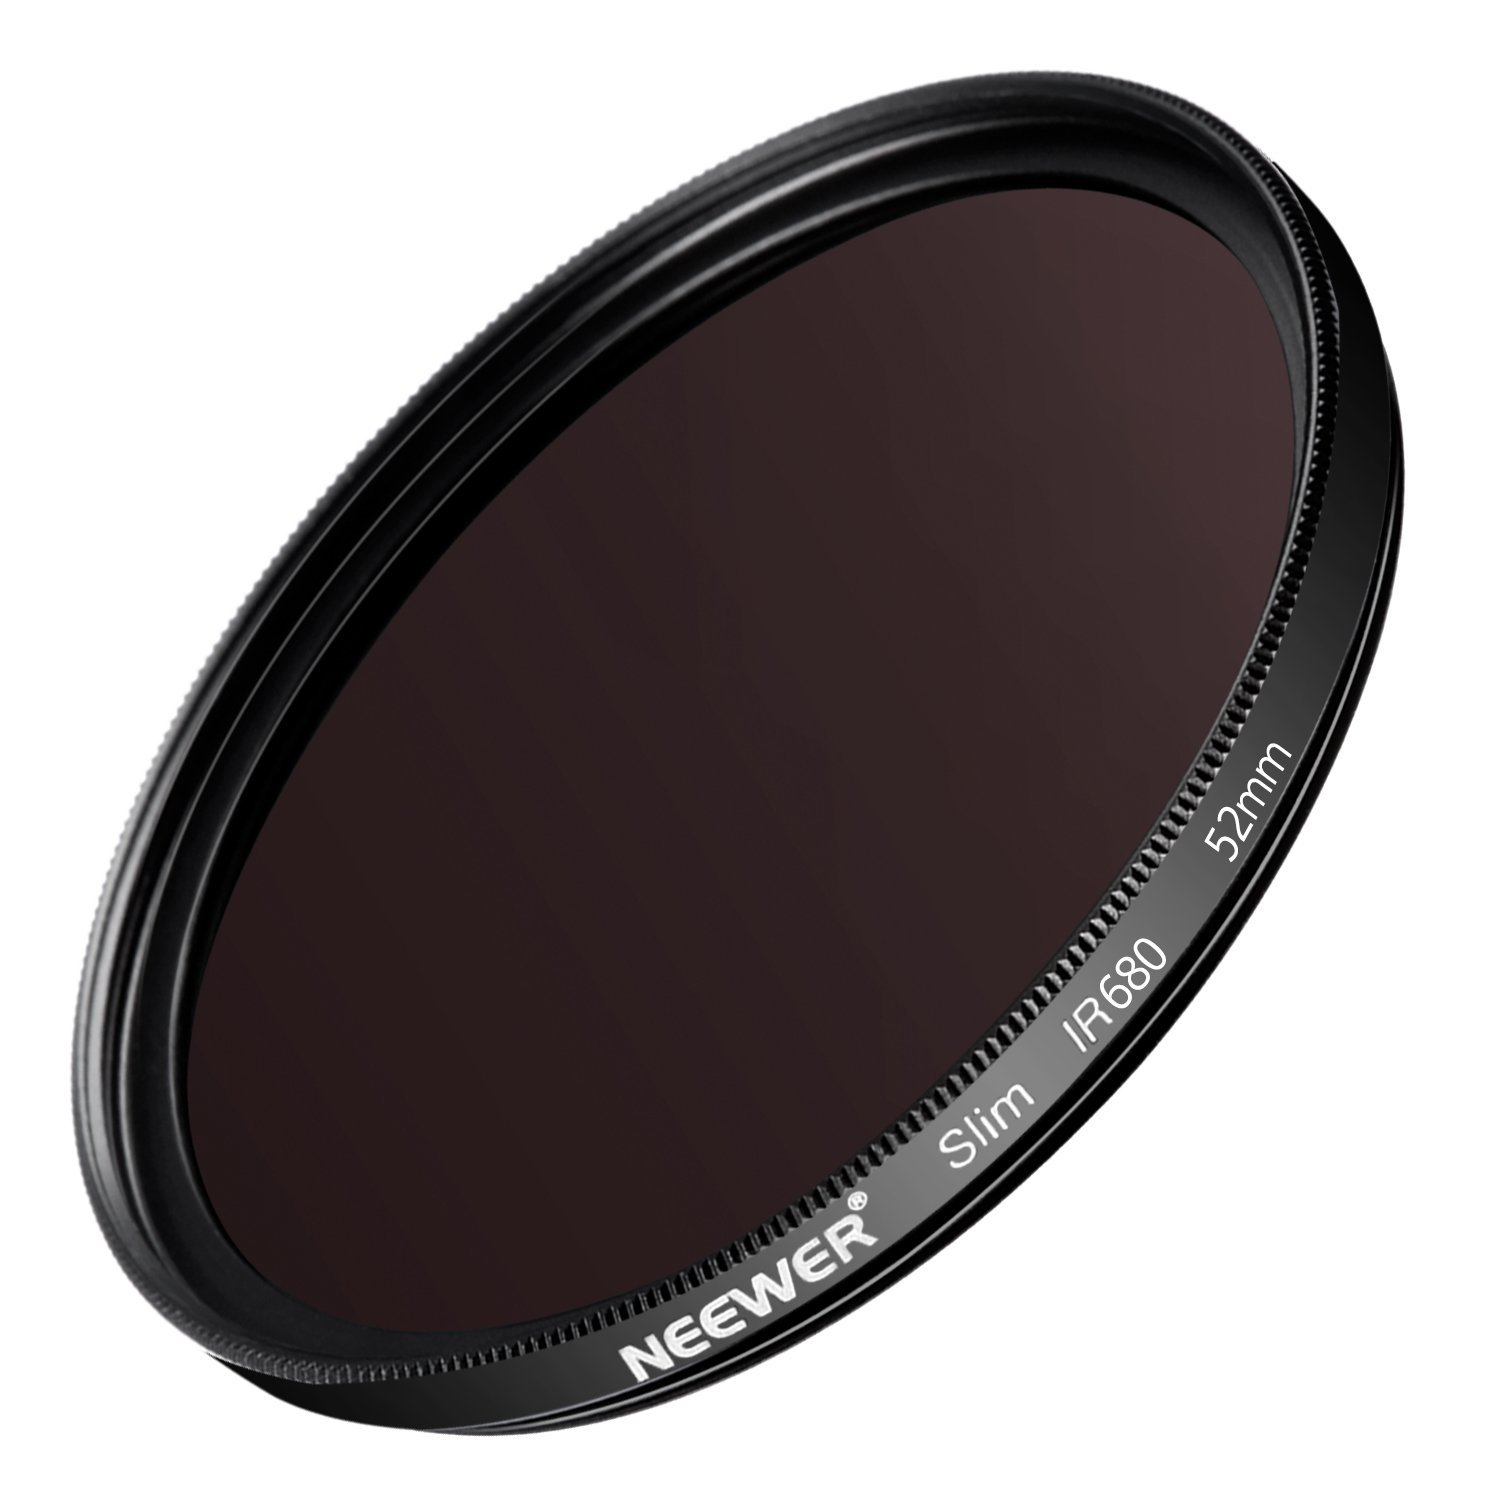 Neewer 52MM IR680 Infrared X-Ray Filter for Nikon D3300 D3200 D3100 D3000 D5300 D5200 D5100 D5000 D7000 D7100 DSLR Camera, Made of HD Optical Glass and Aluminum Alloy Frame